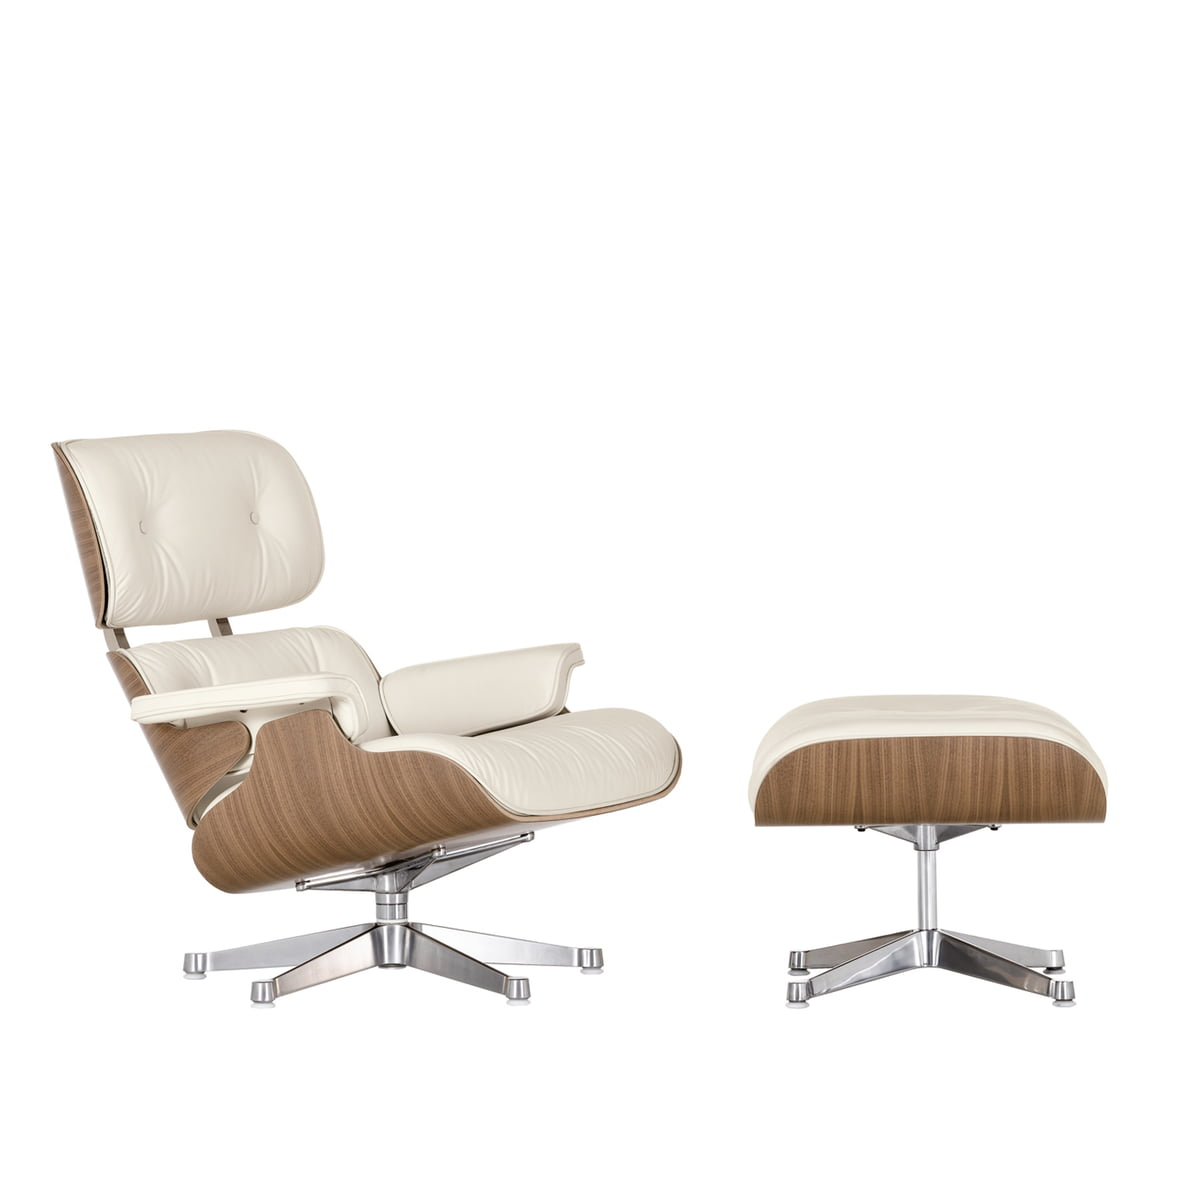 Vitra Lounge Chair Ottoman Walnut White Polished